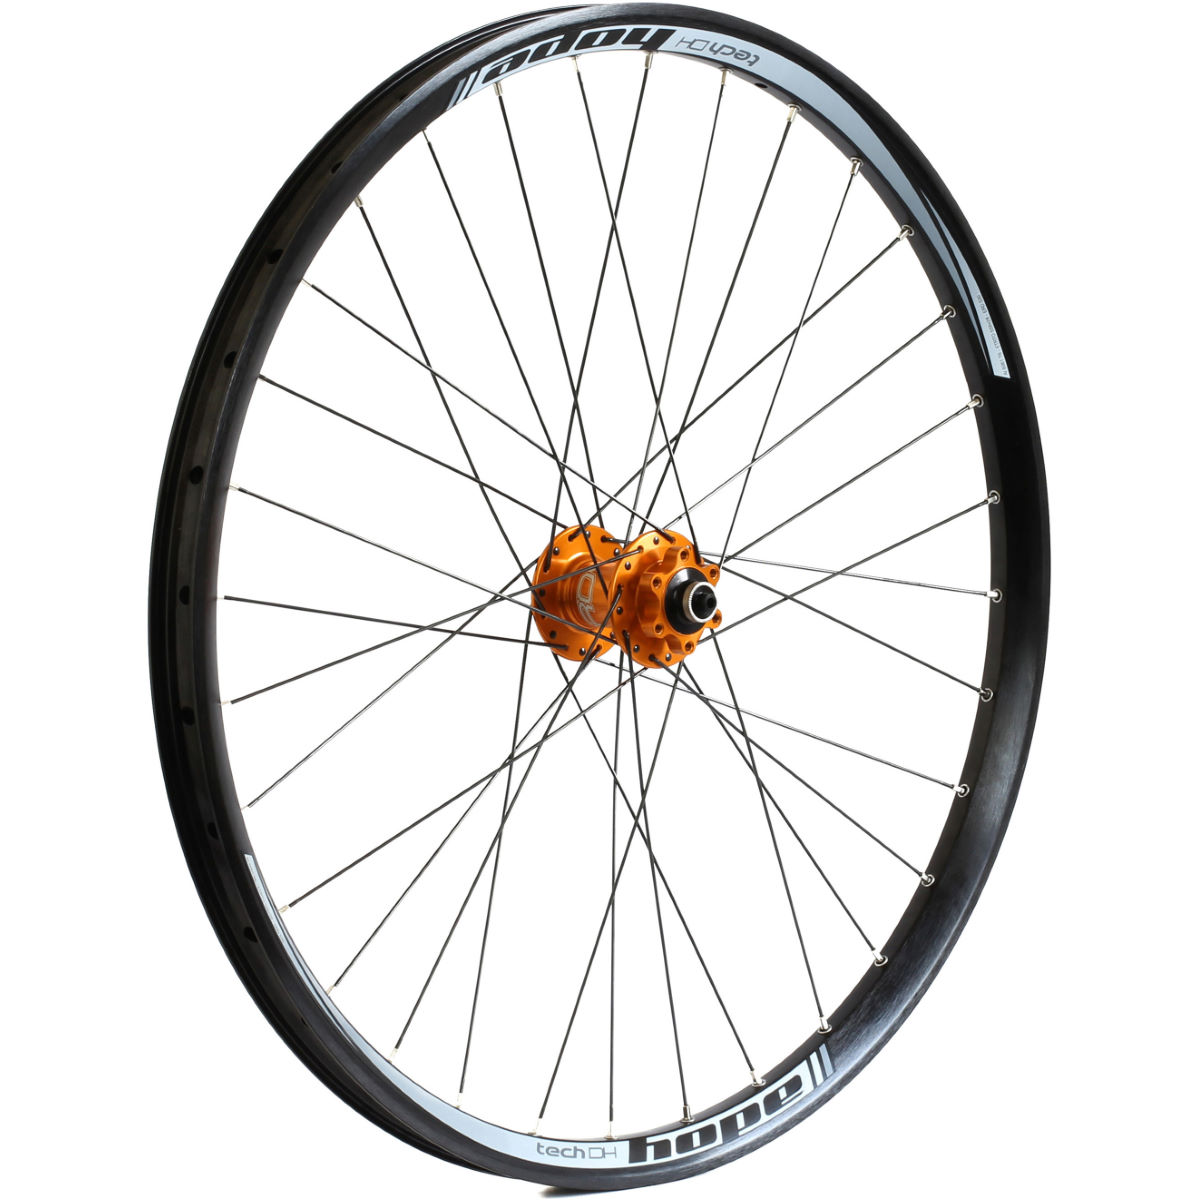 Roue avant VTT Hope Tech DH Pro 4 - 26'' n/a 20mm - Thru Orange